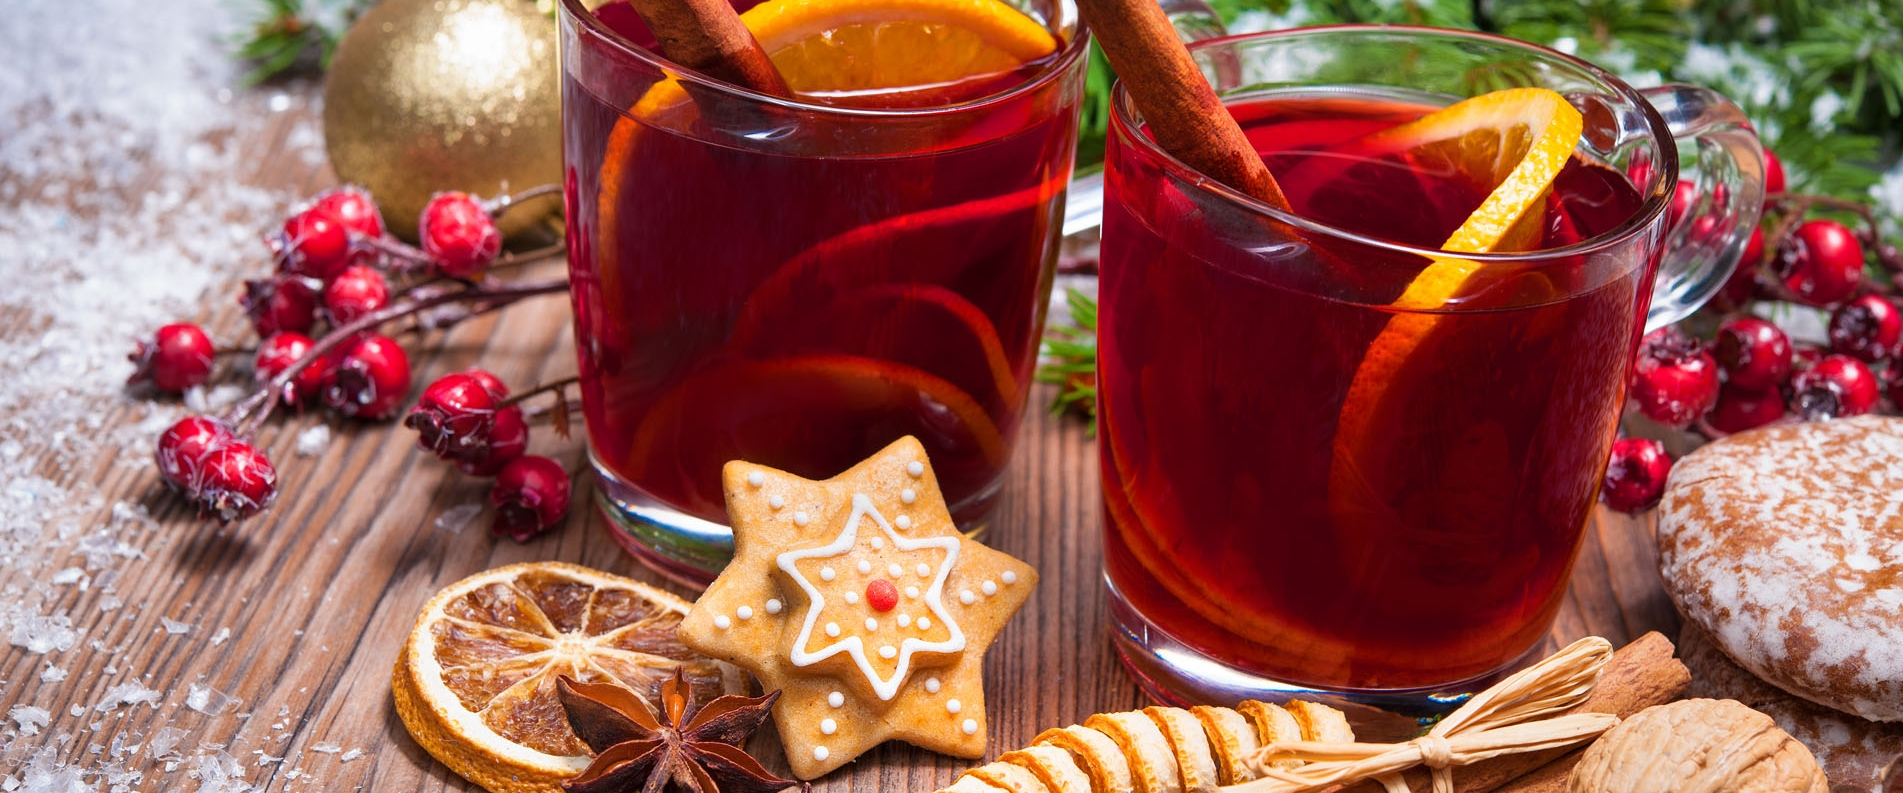 How They Celebrate Christmas in Cyprus: Traditions and Cuisine